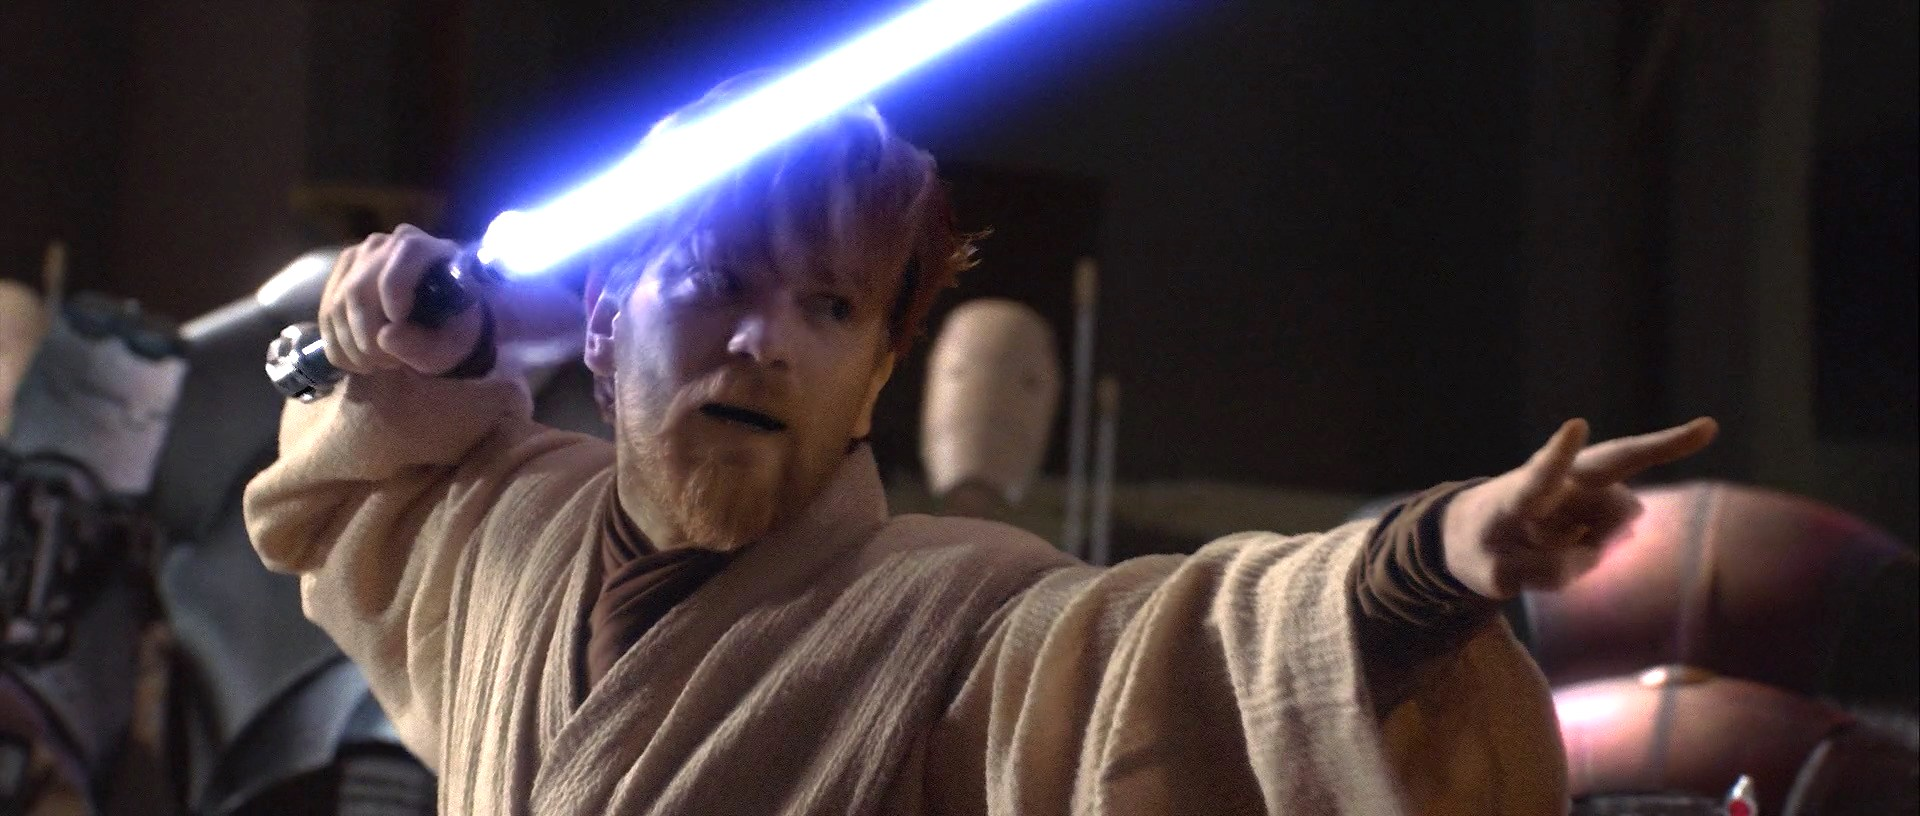 Obi-Wan Kenobi (Ewan McGregor) stands in a fighting position with his lightsaber in the air as he prepares to battle General Grevious in Revenge of the Sith.